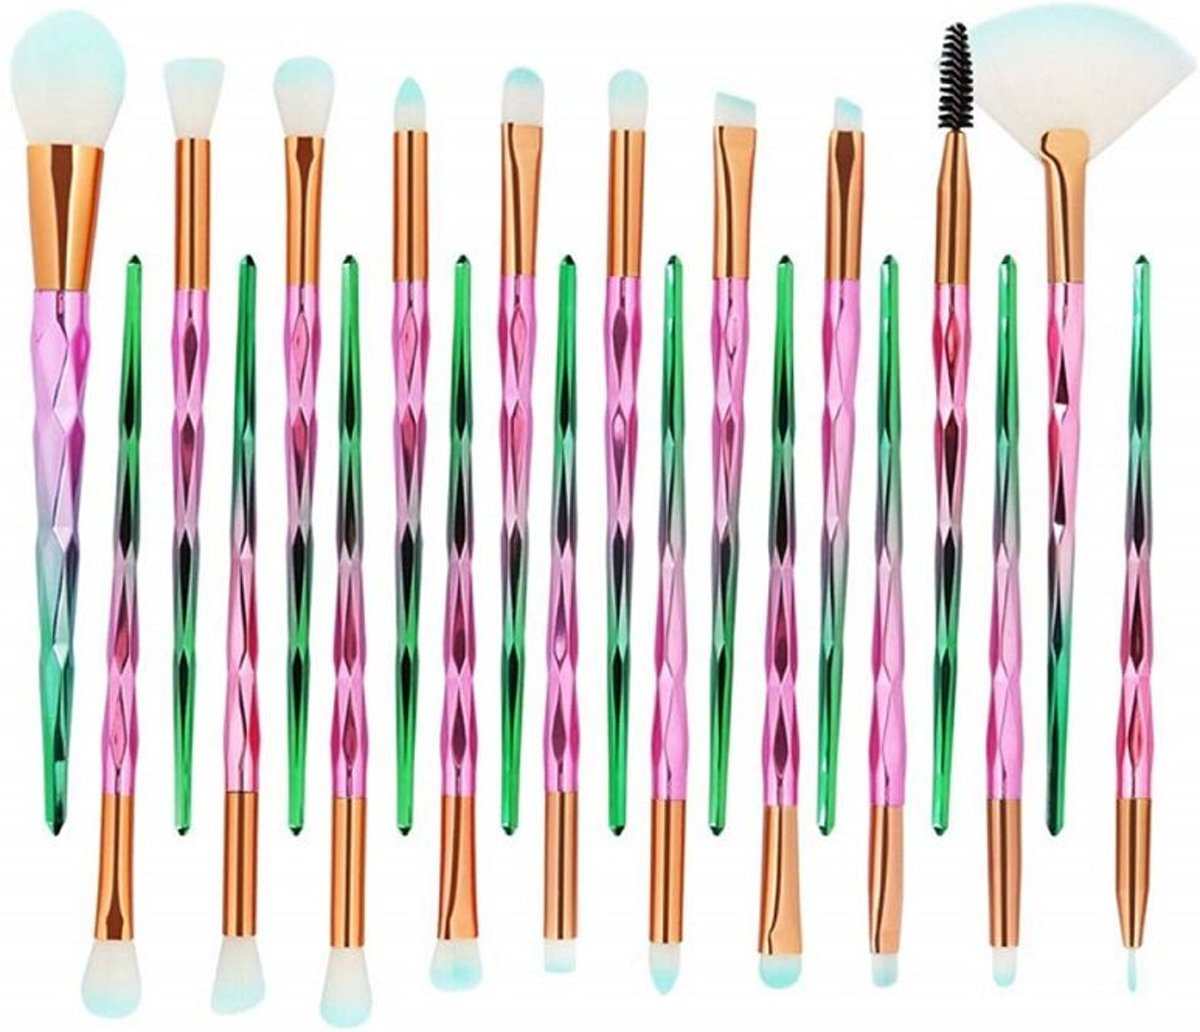 Make-Up Kwasten Set 20 Stuks - Groen